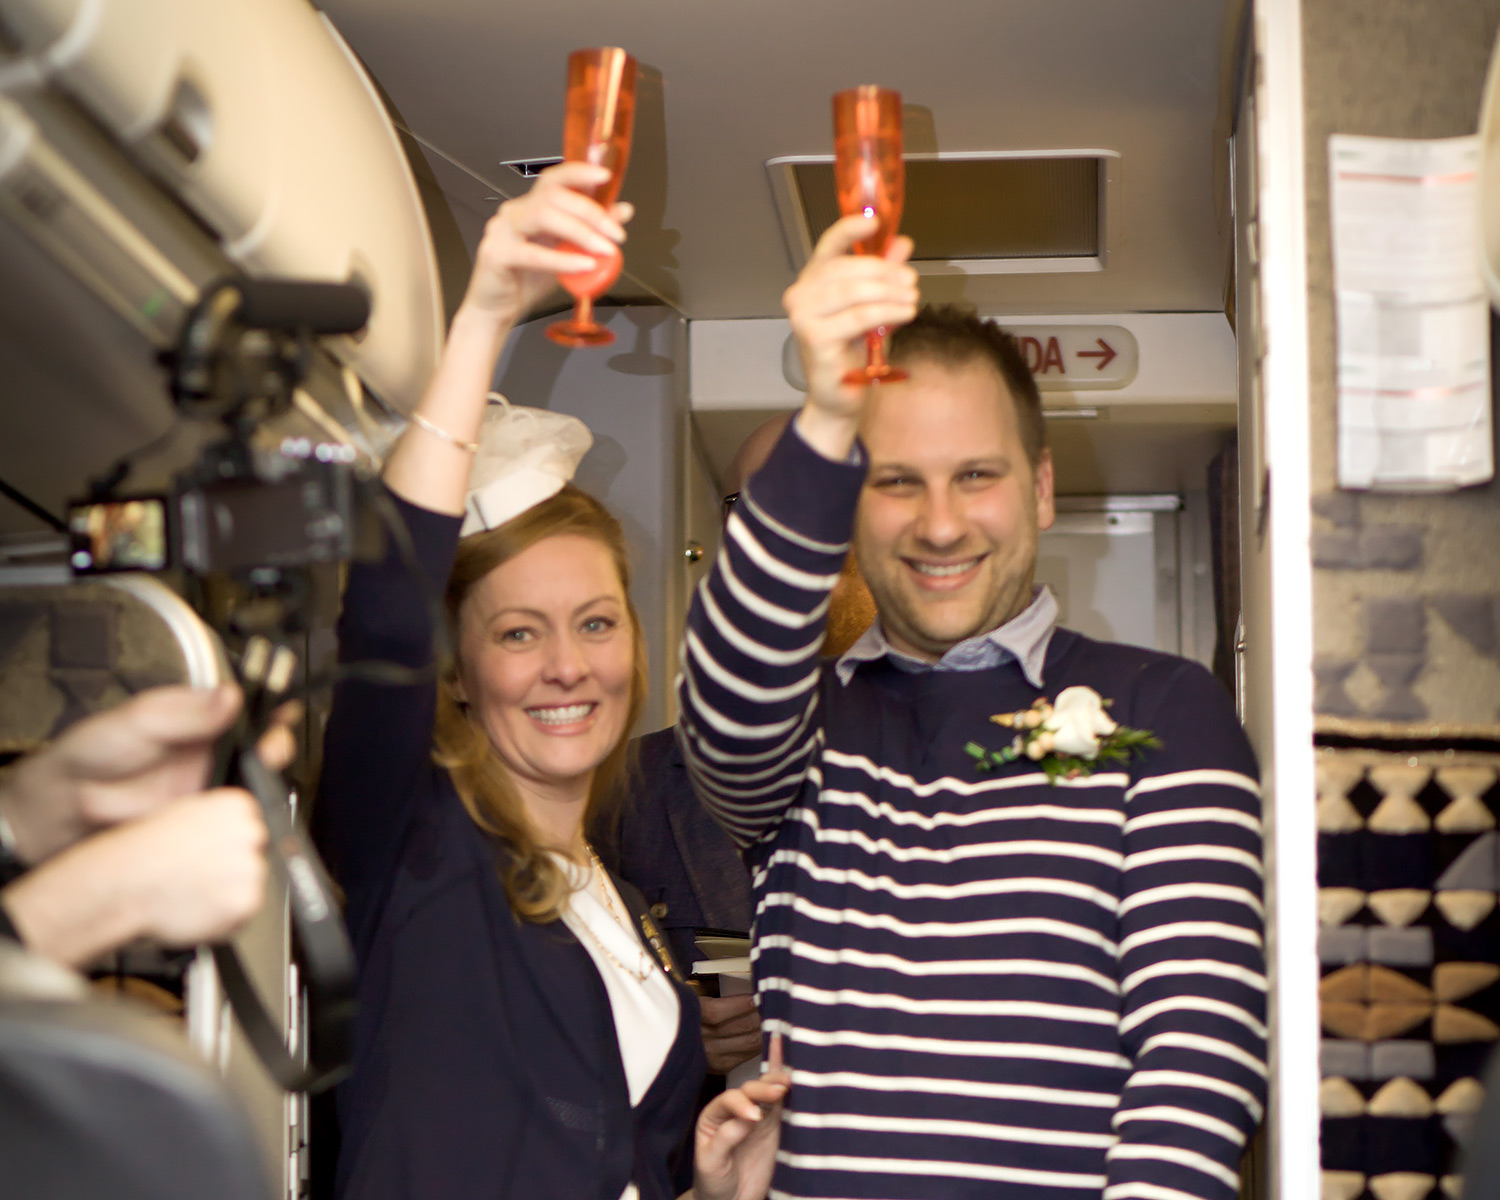 Airplane wedding champagne toast